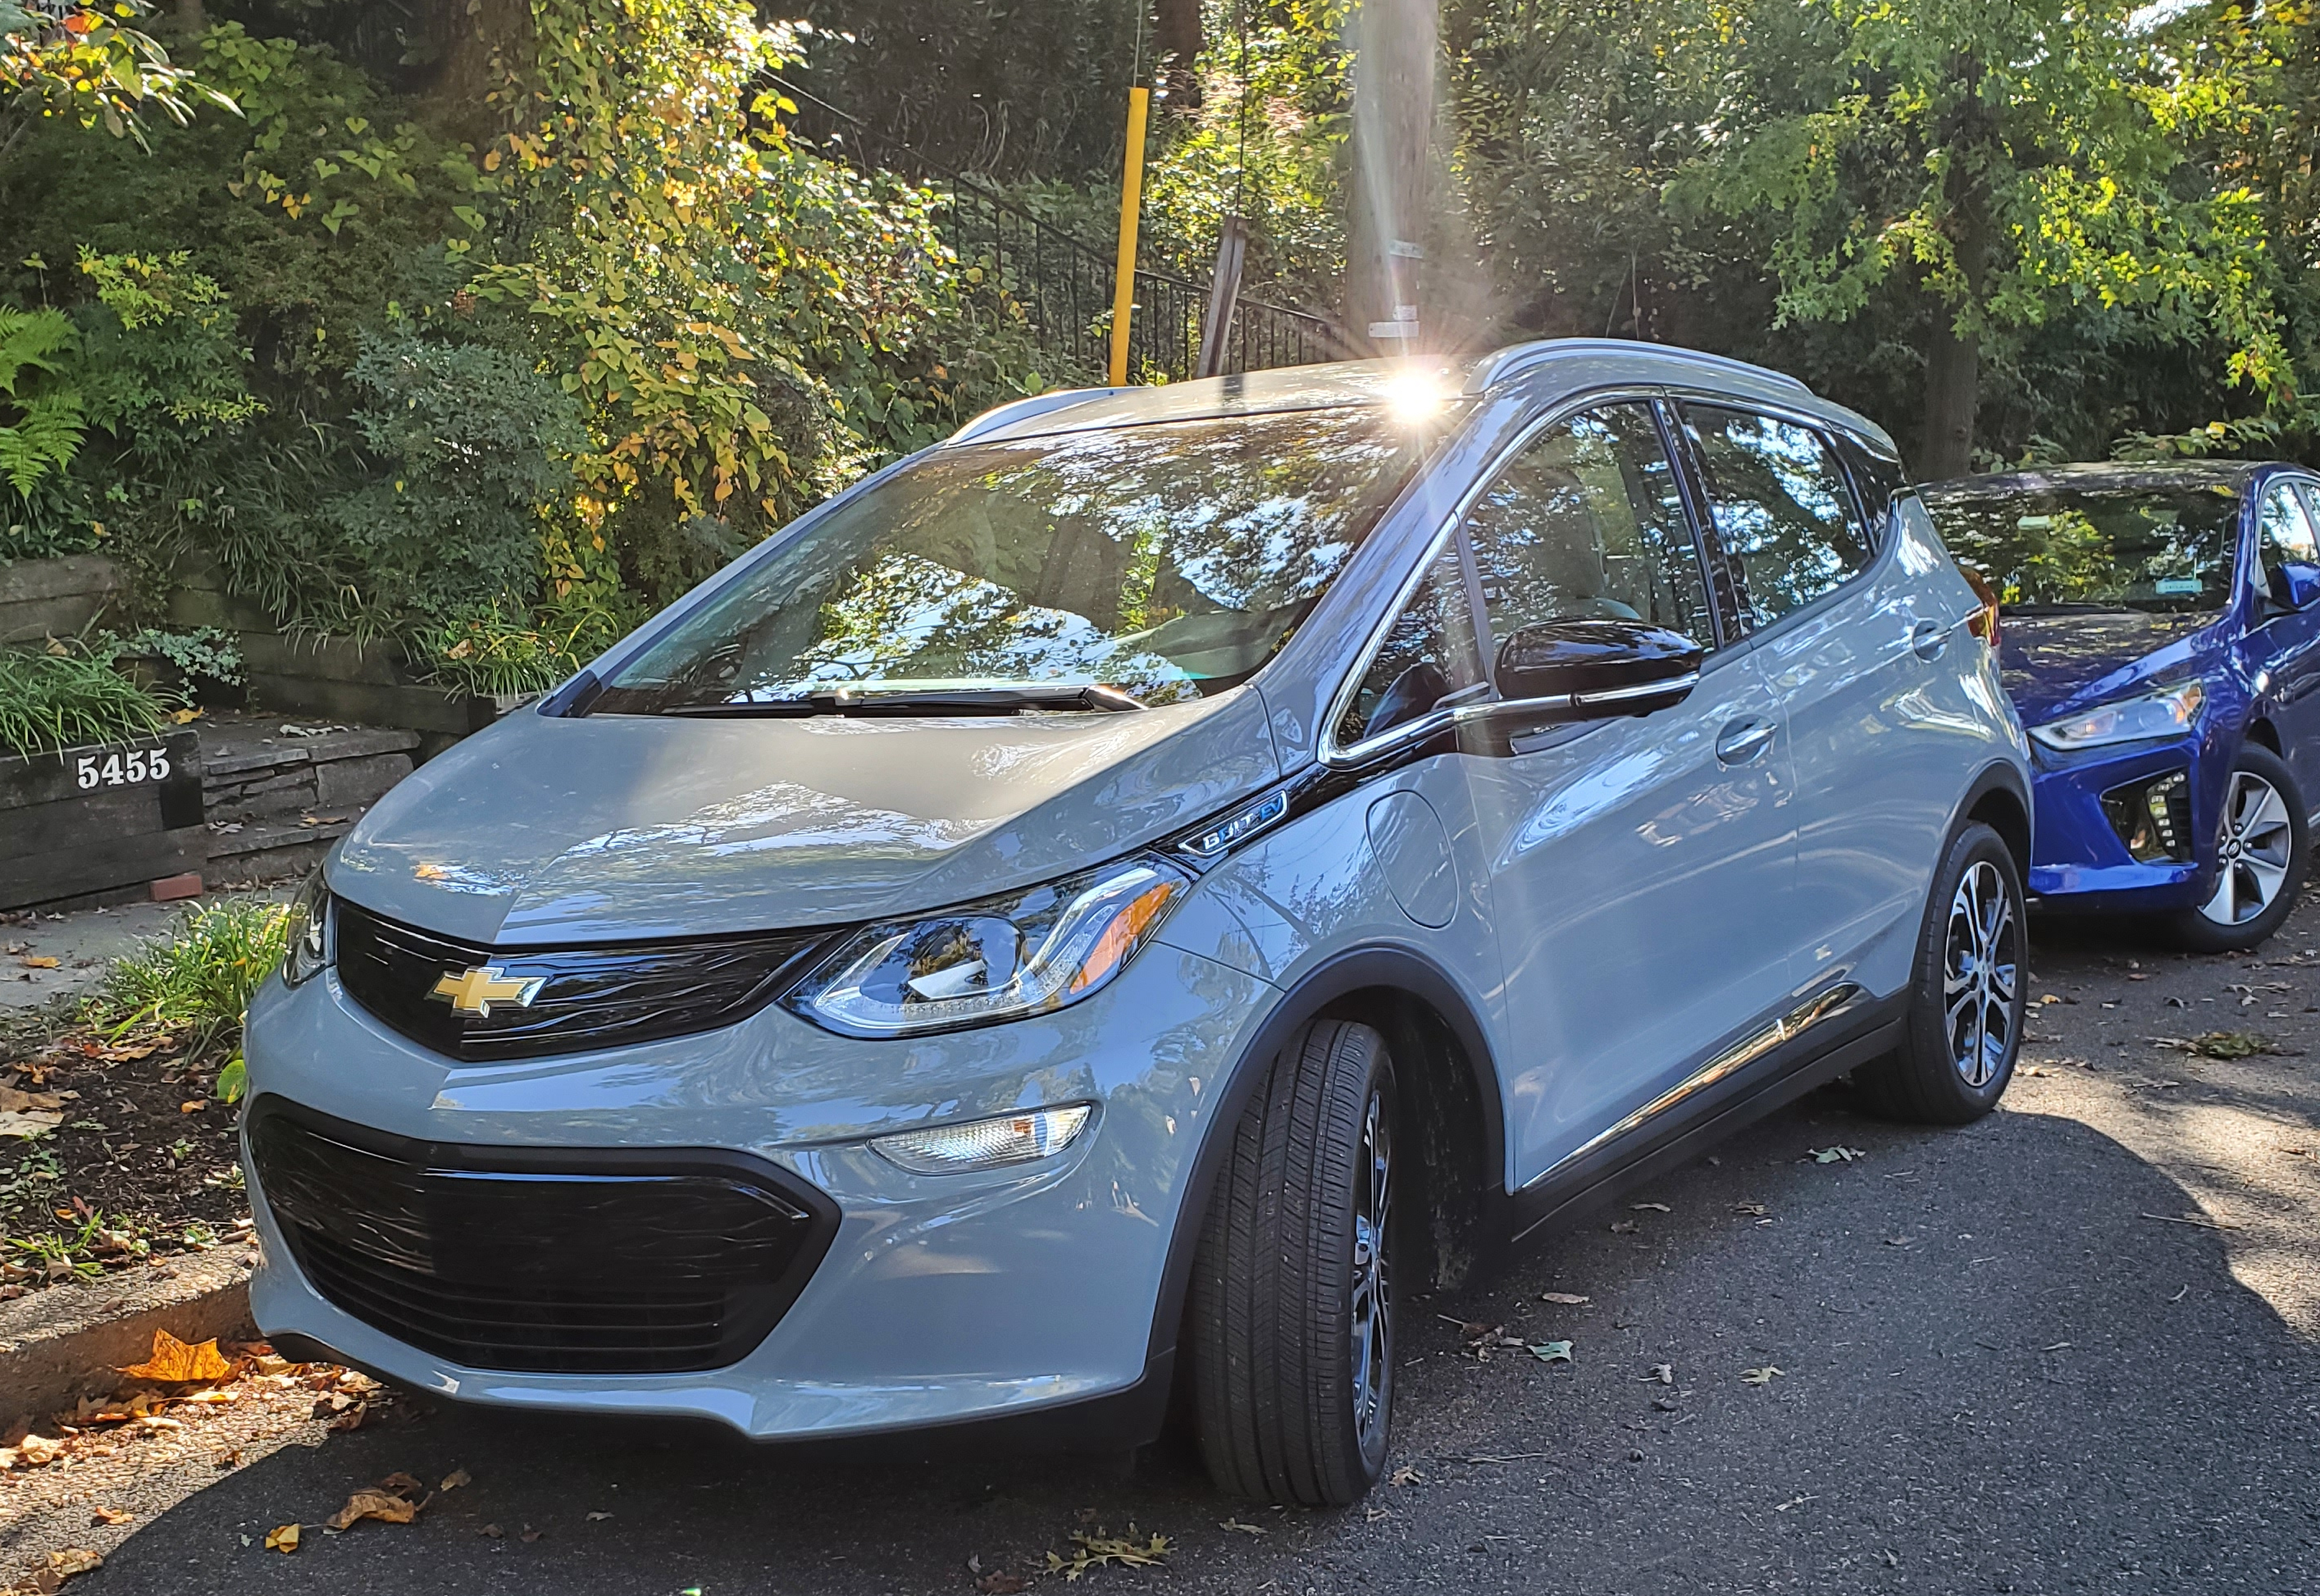 2020 Chevy Bolt EV with a 2019 Hyundai Ioniq Electric behind it.